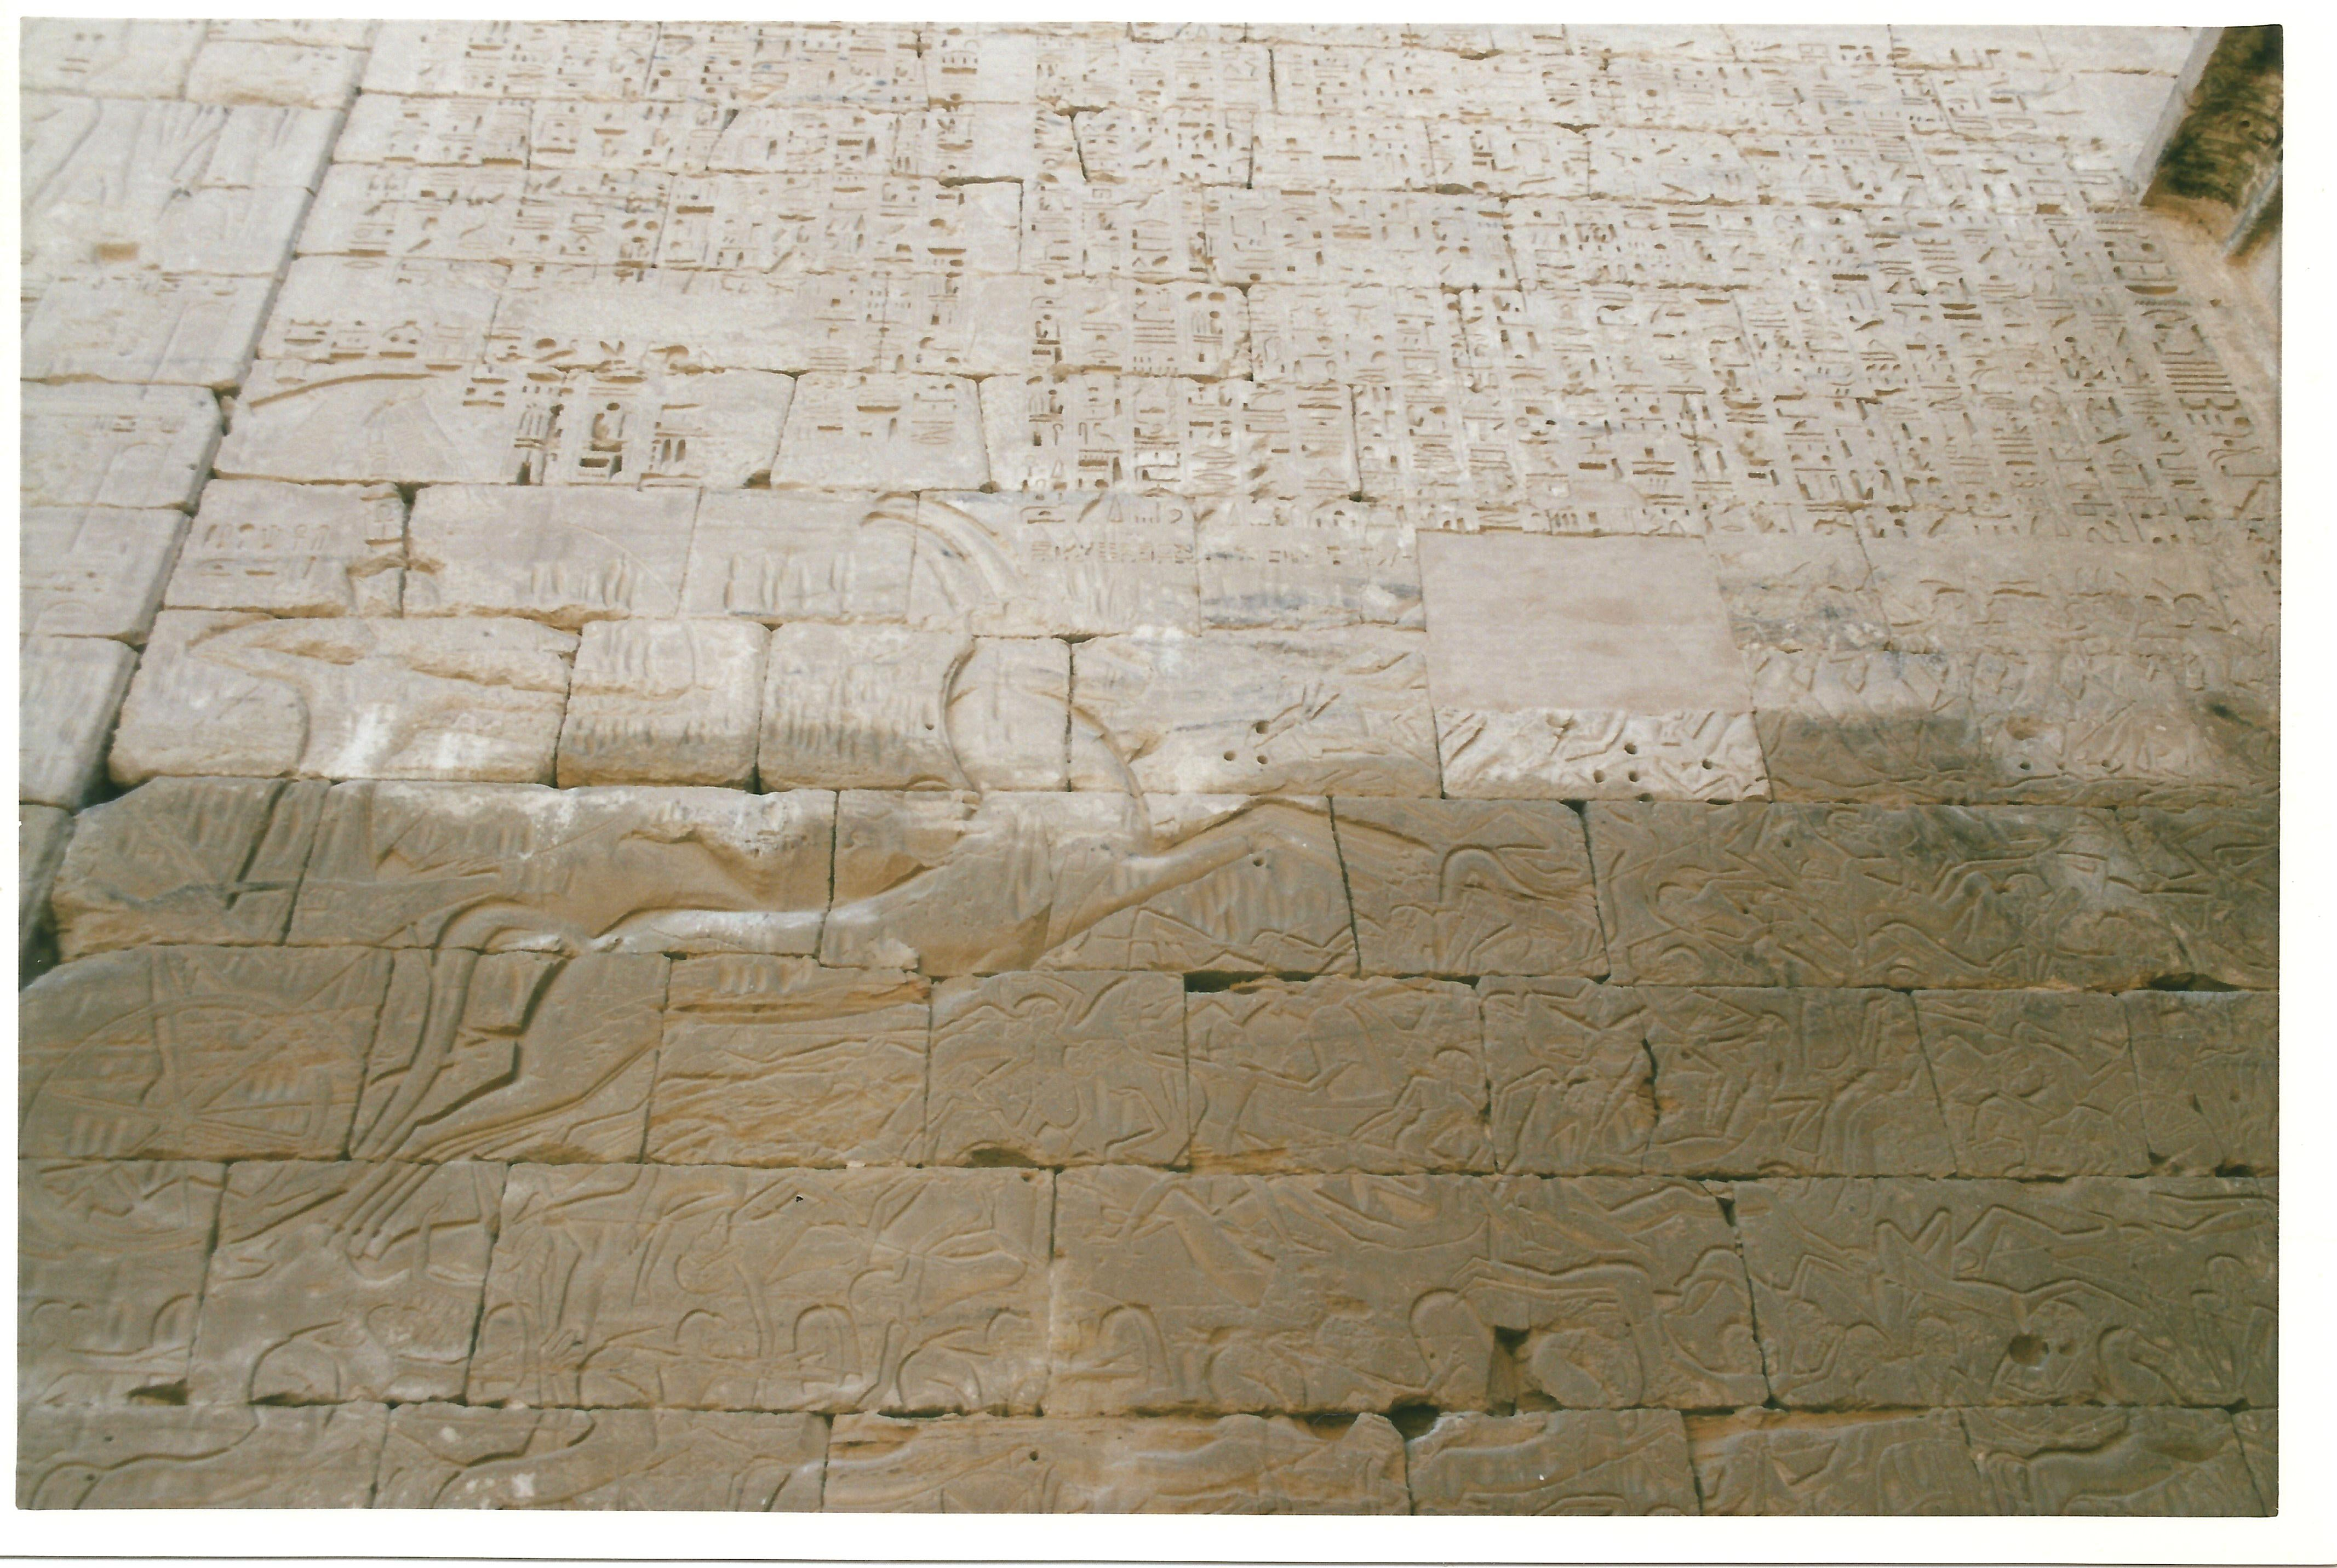 Pared de piedra en Medinet Habu